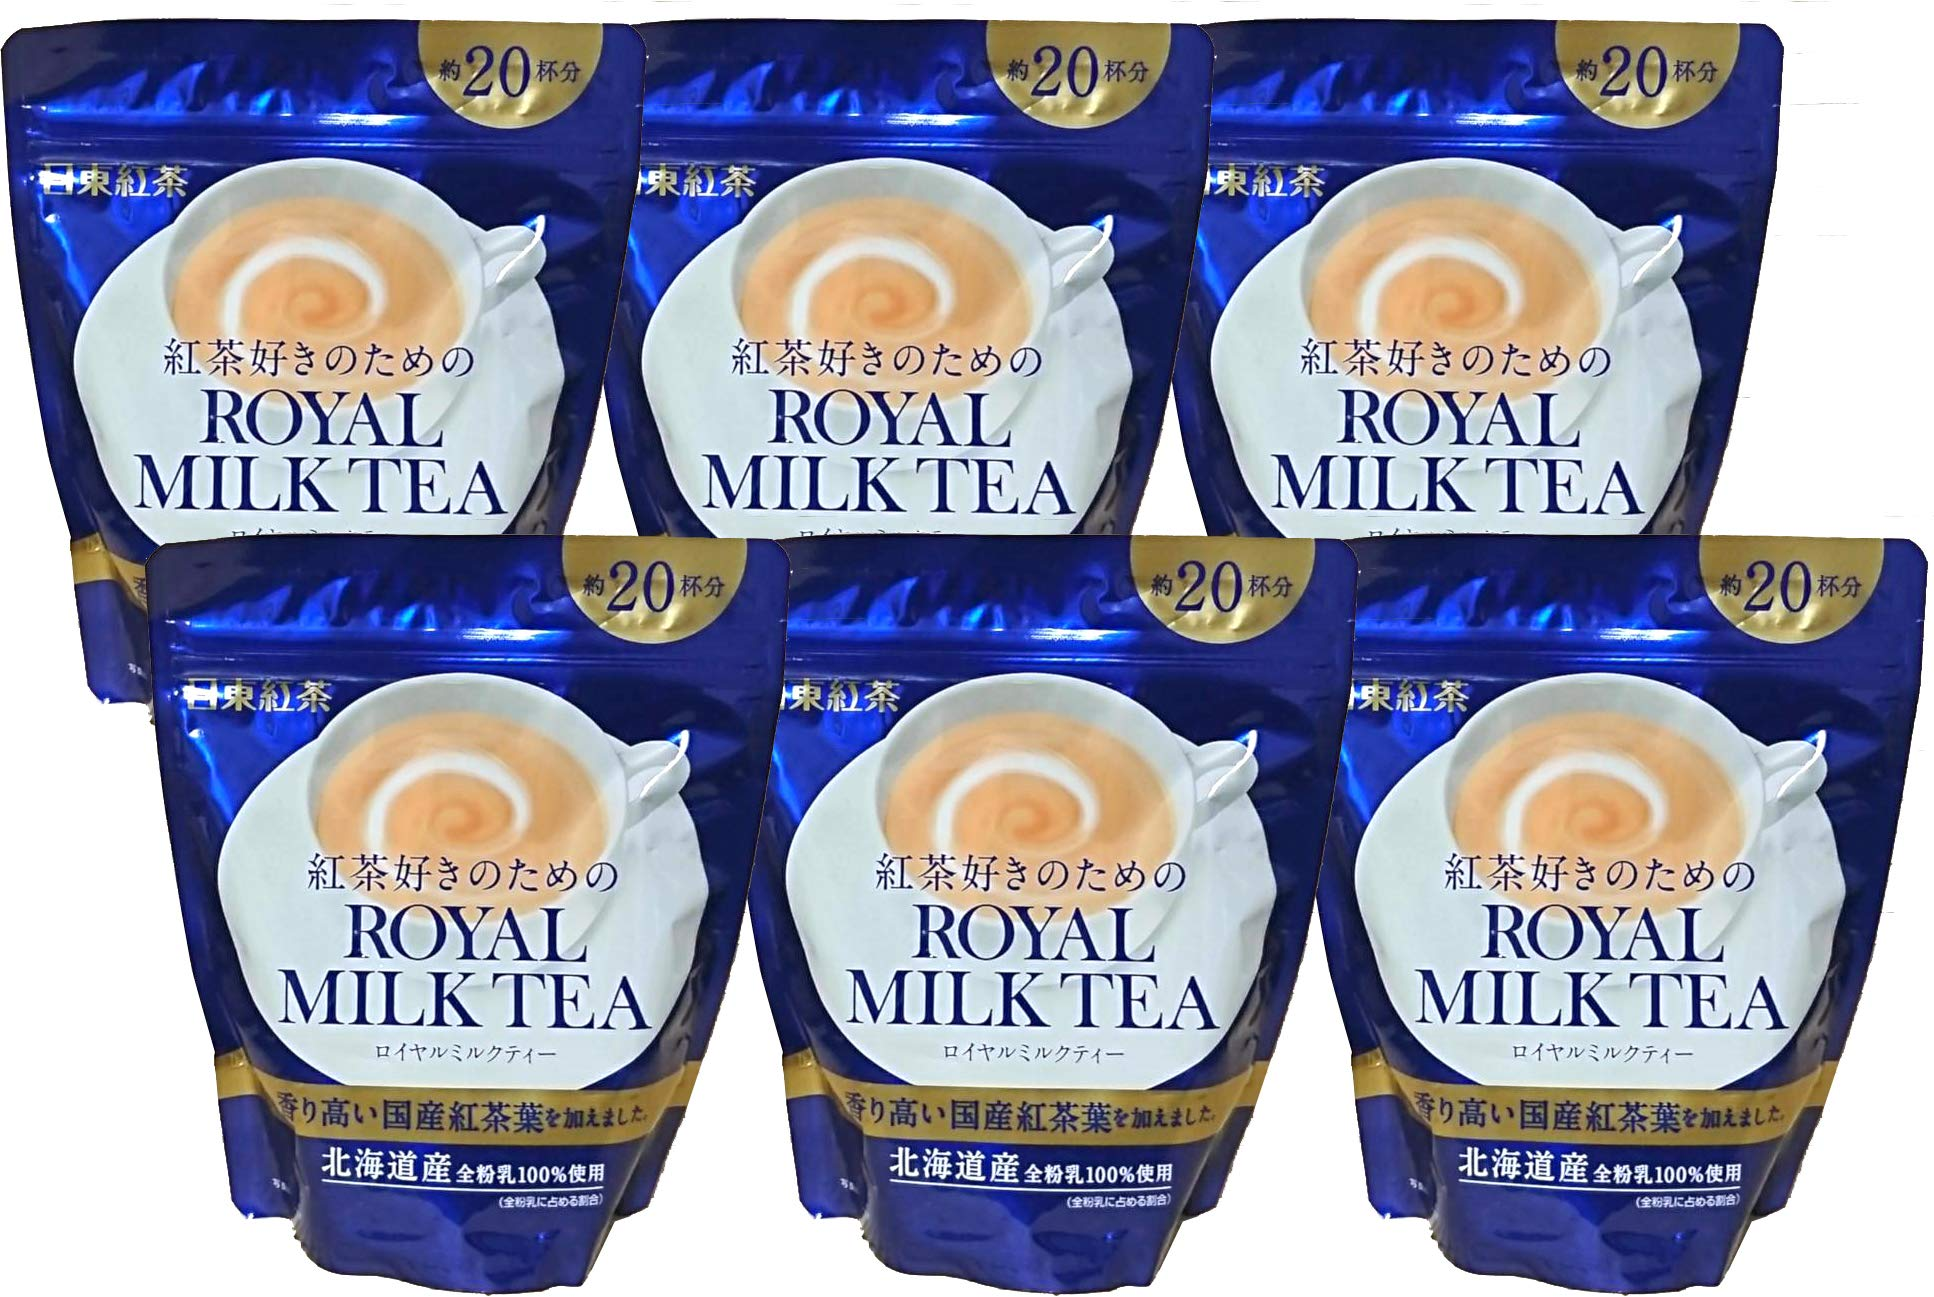 Nitto Royal Milk Tea 9.87oz (280g) (6 Pack) by Nitto